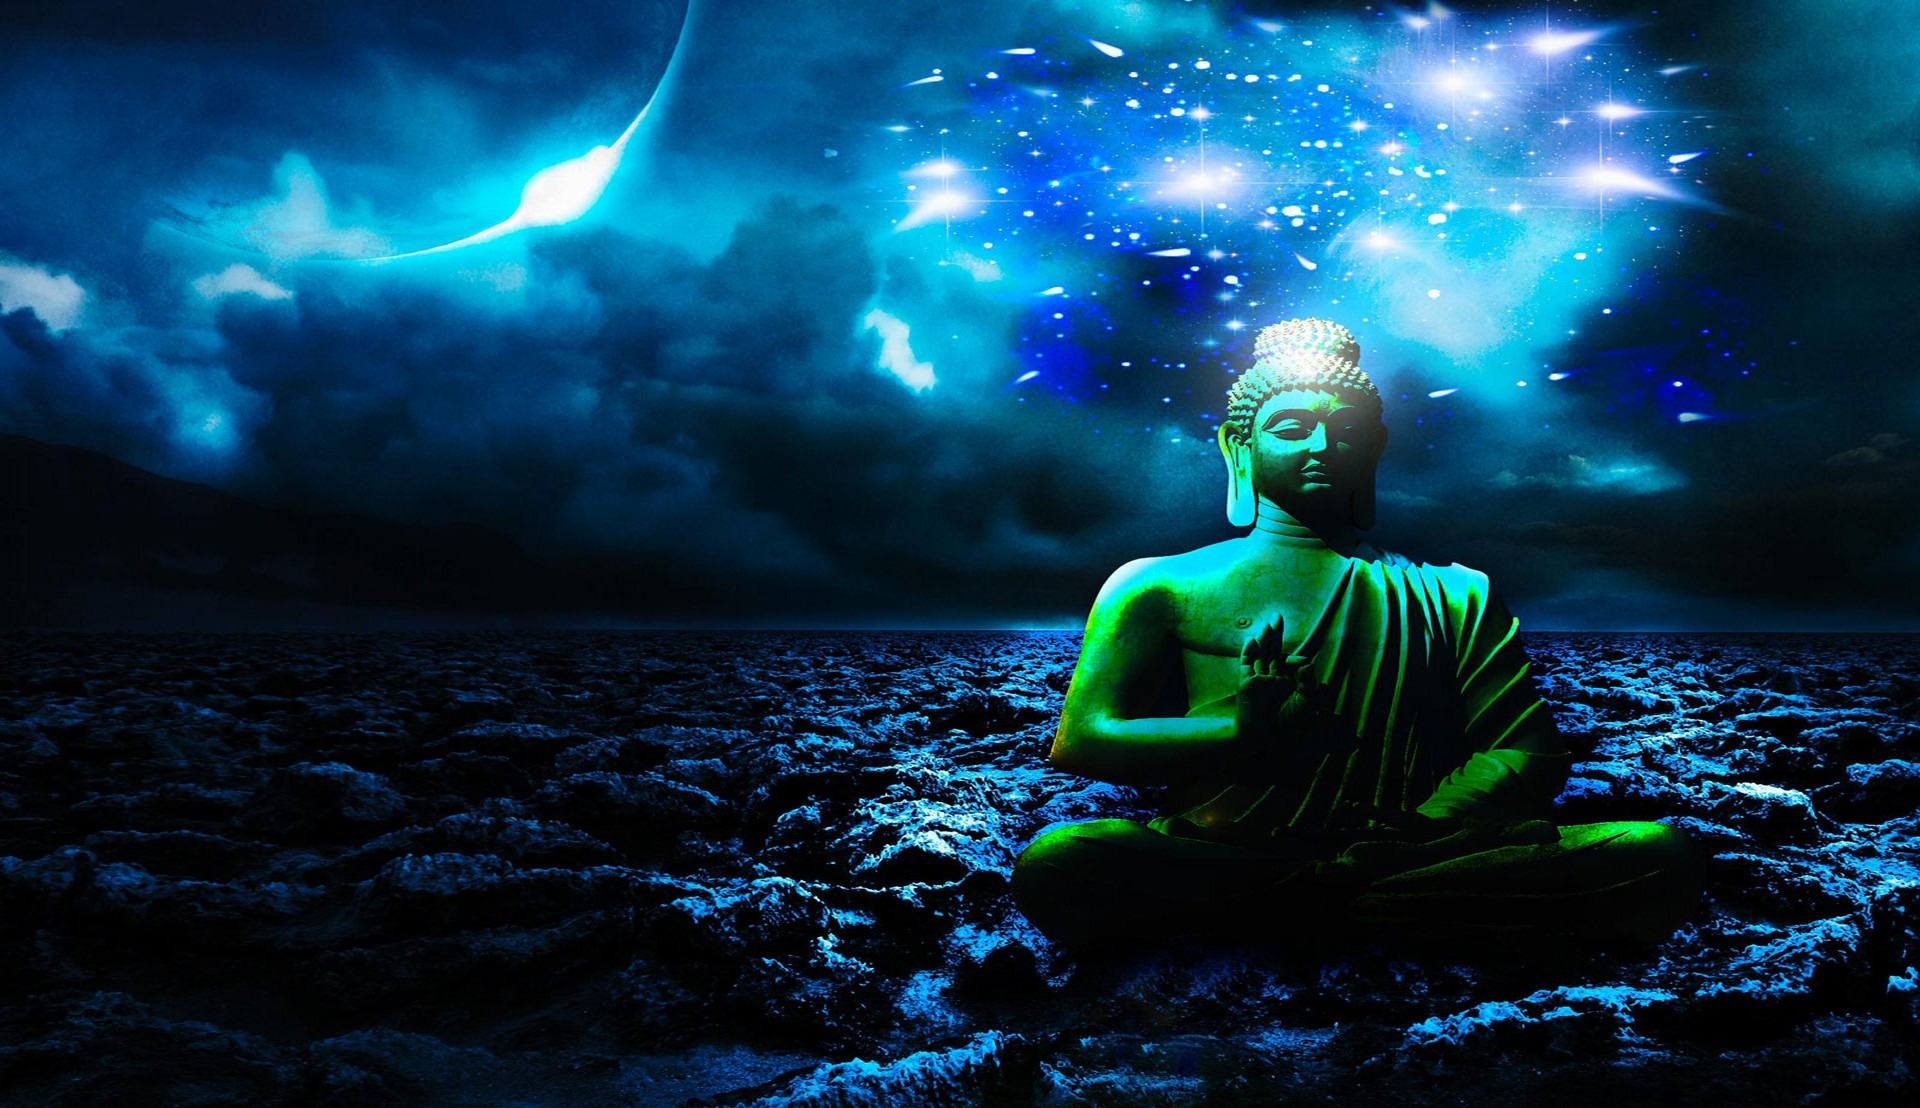 Meditation Desktop Wallpapers   HD Wallpapers Backgrounds of Your 1920x1108